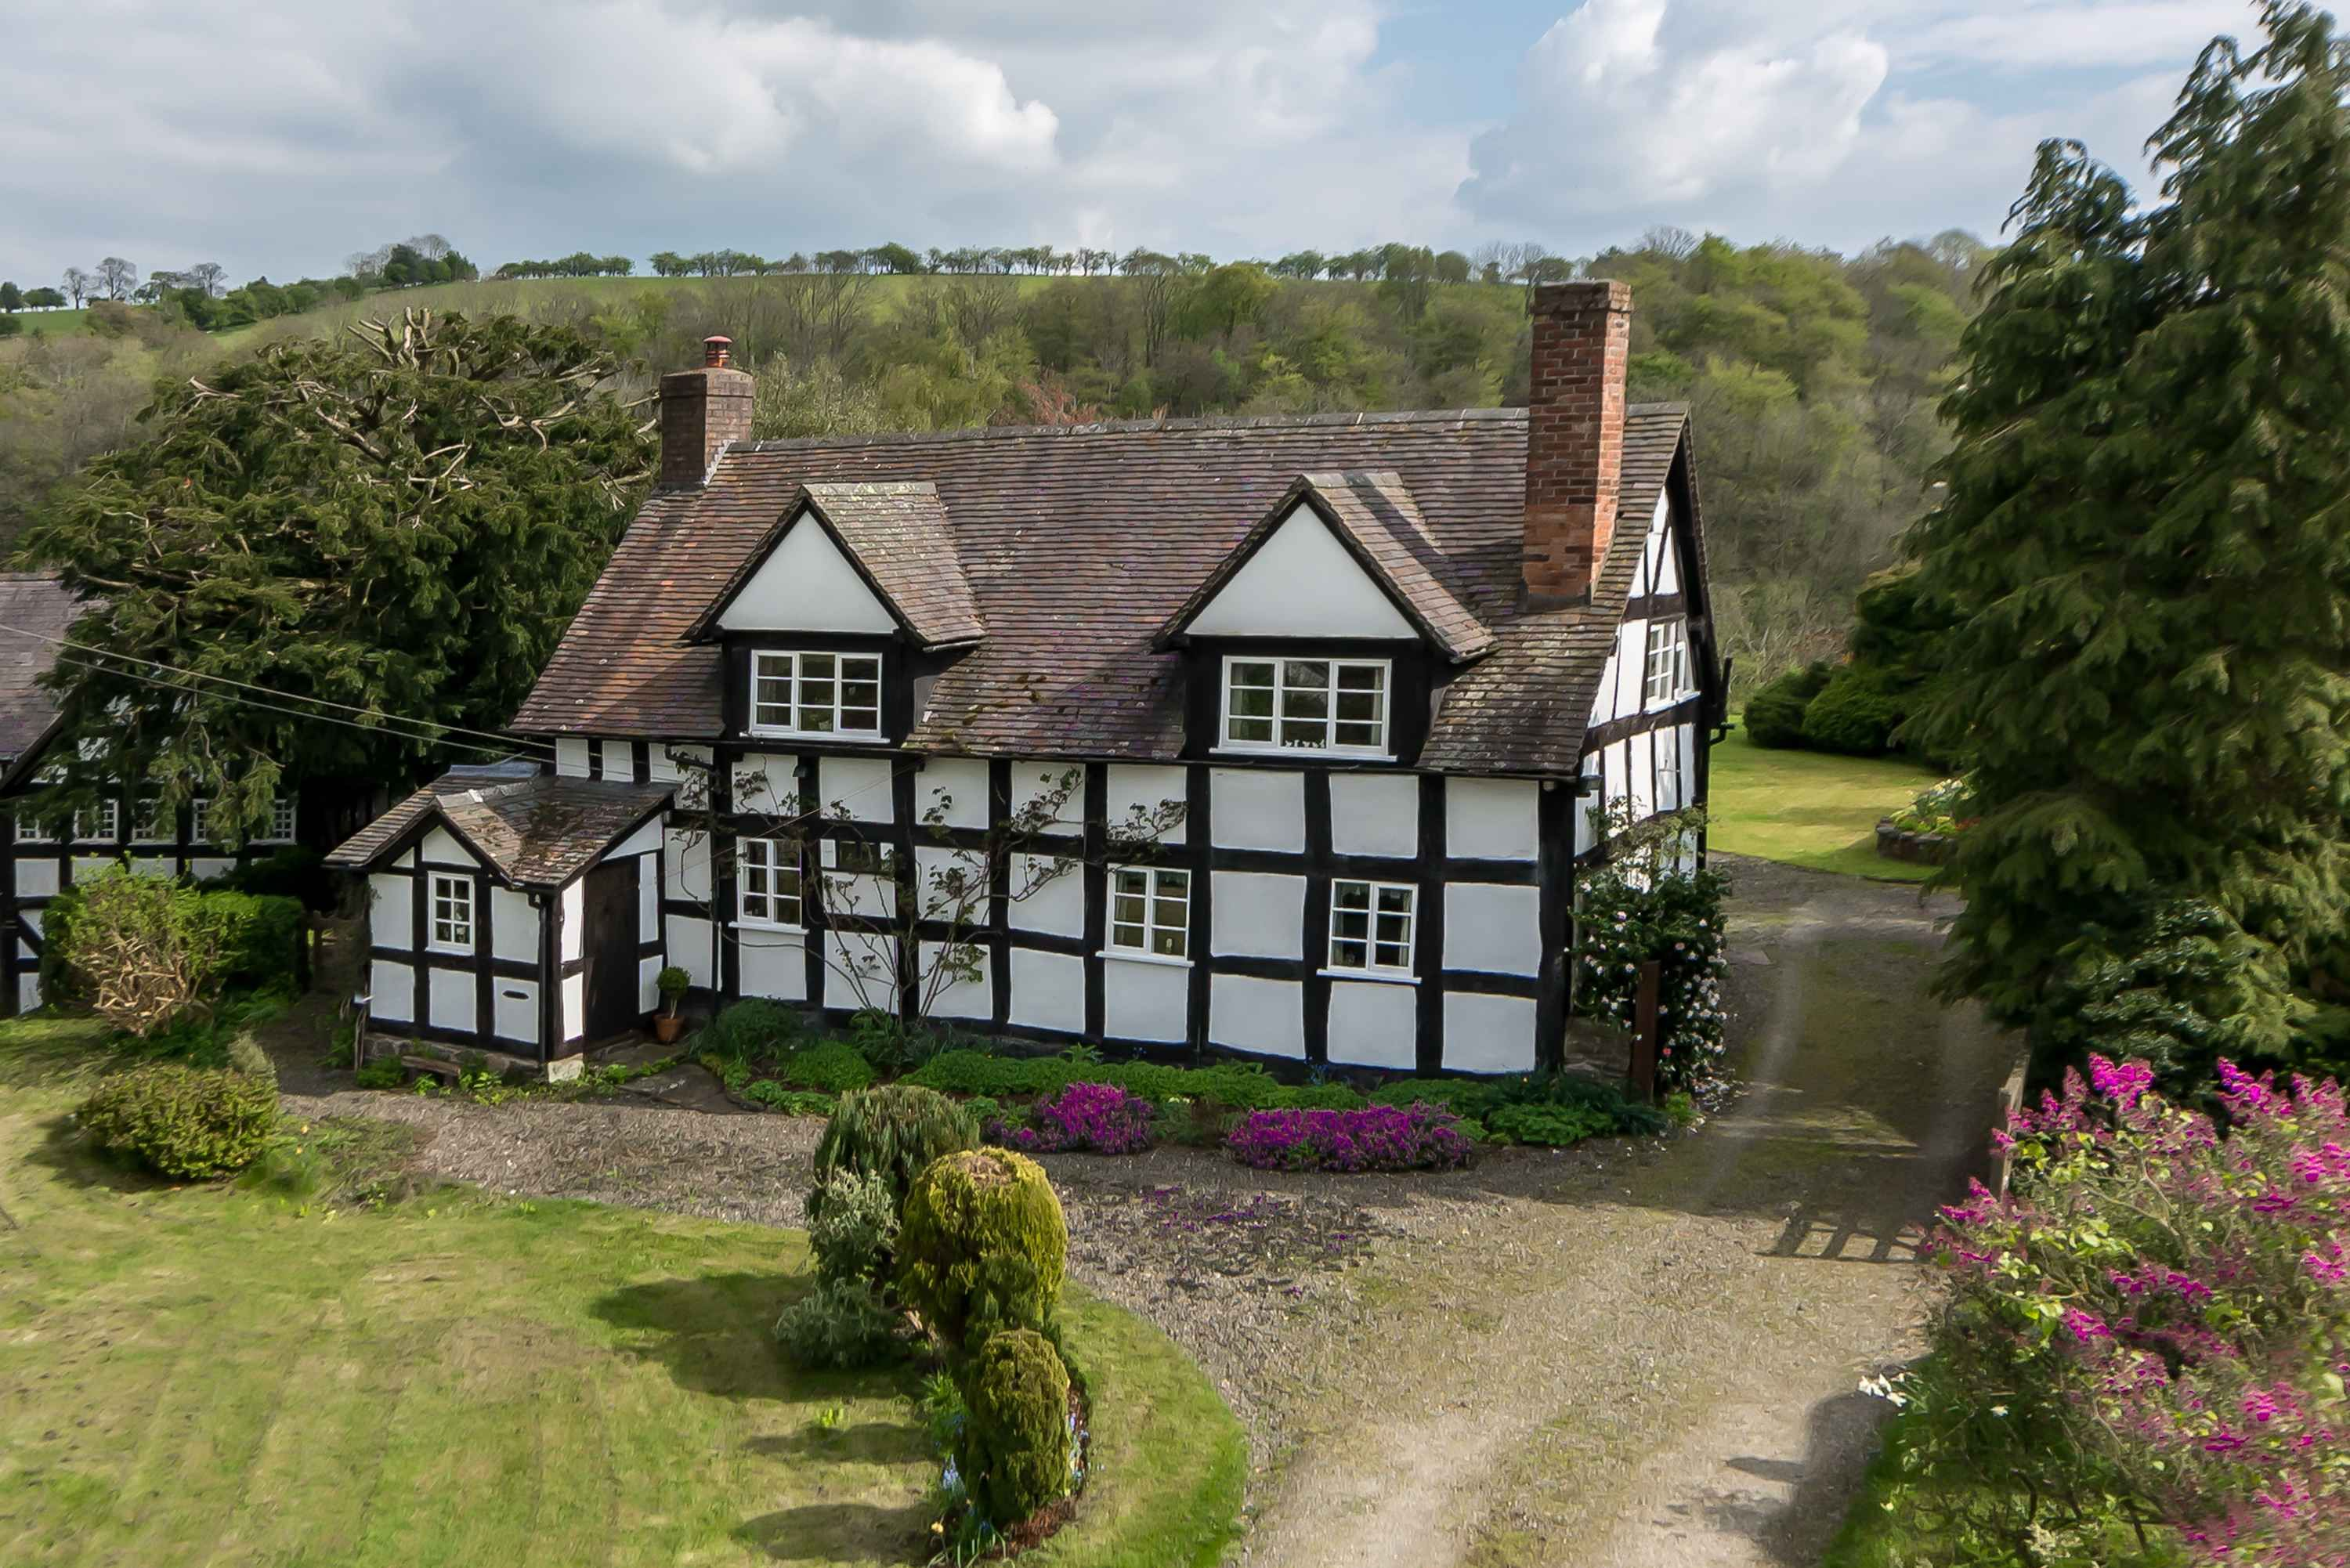 c 1650 shropshire england 651 093 old house dreams cool